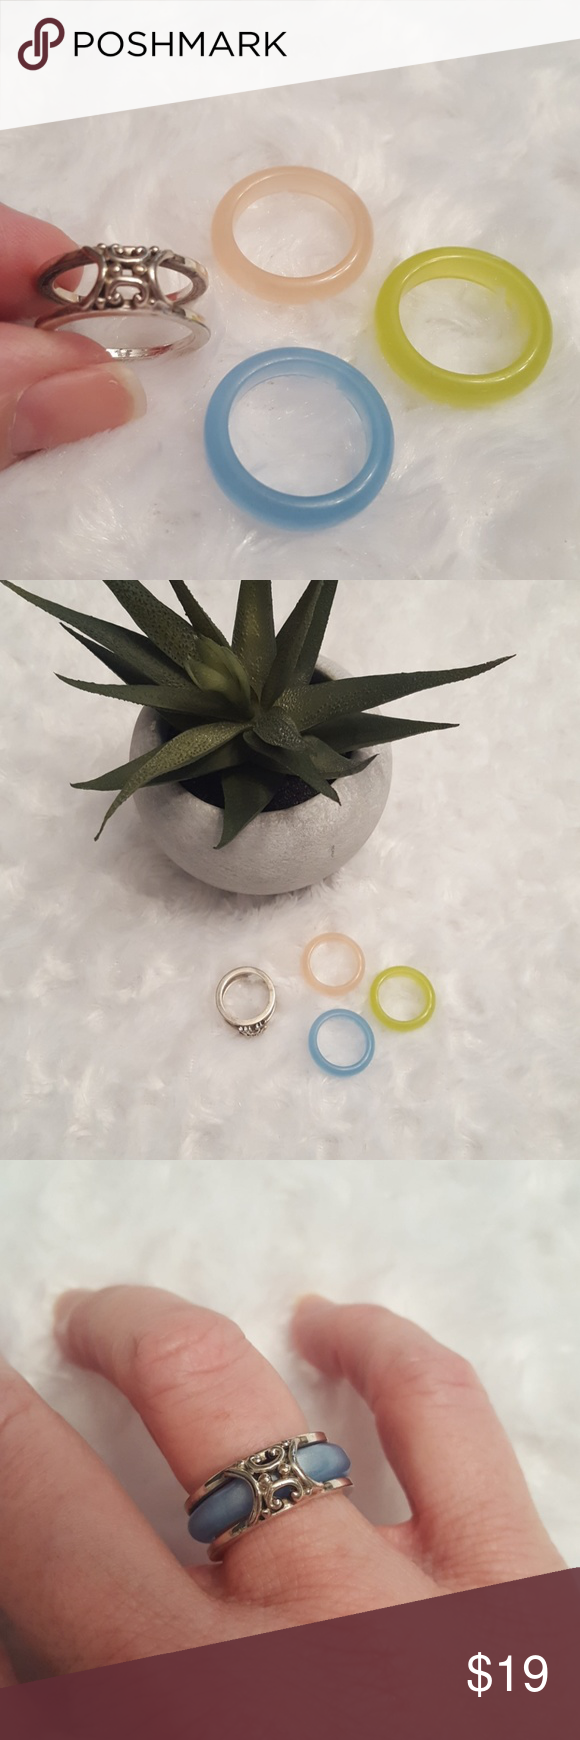 What a cute concept!!  Silver ring. This super cute silver ring has 3 interchangeable plastic colored Rings including pale pink, light blue, and lime green to change to match your outfits! Jewelry Rings